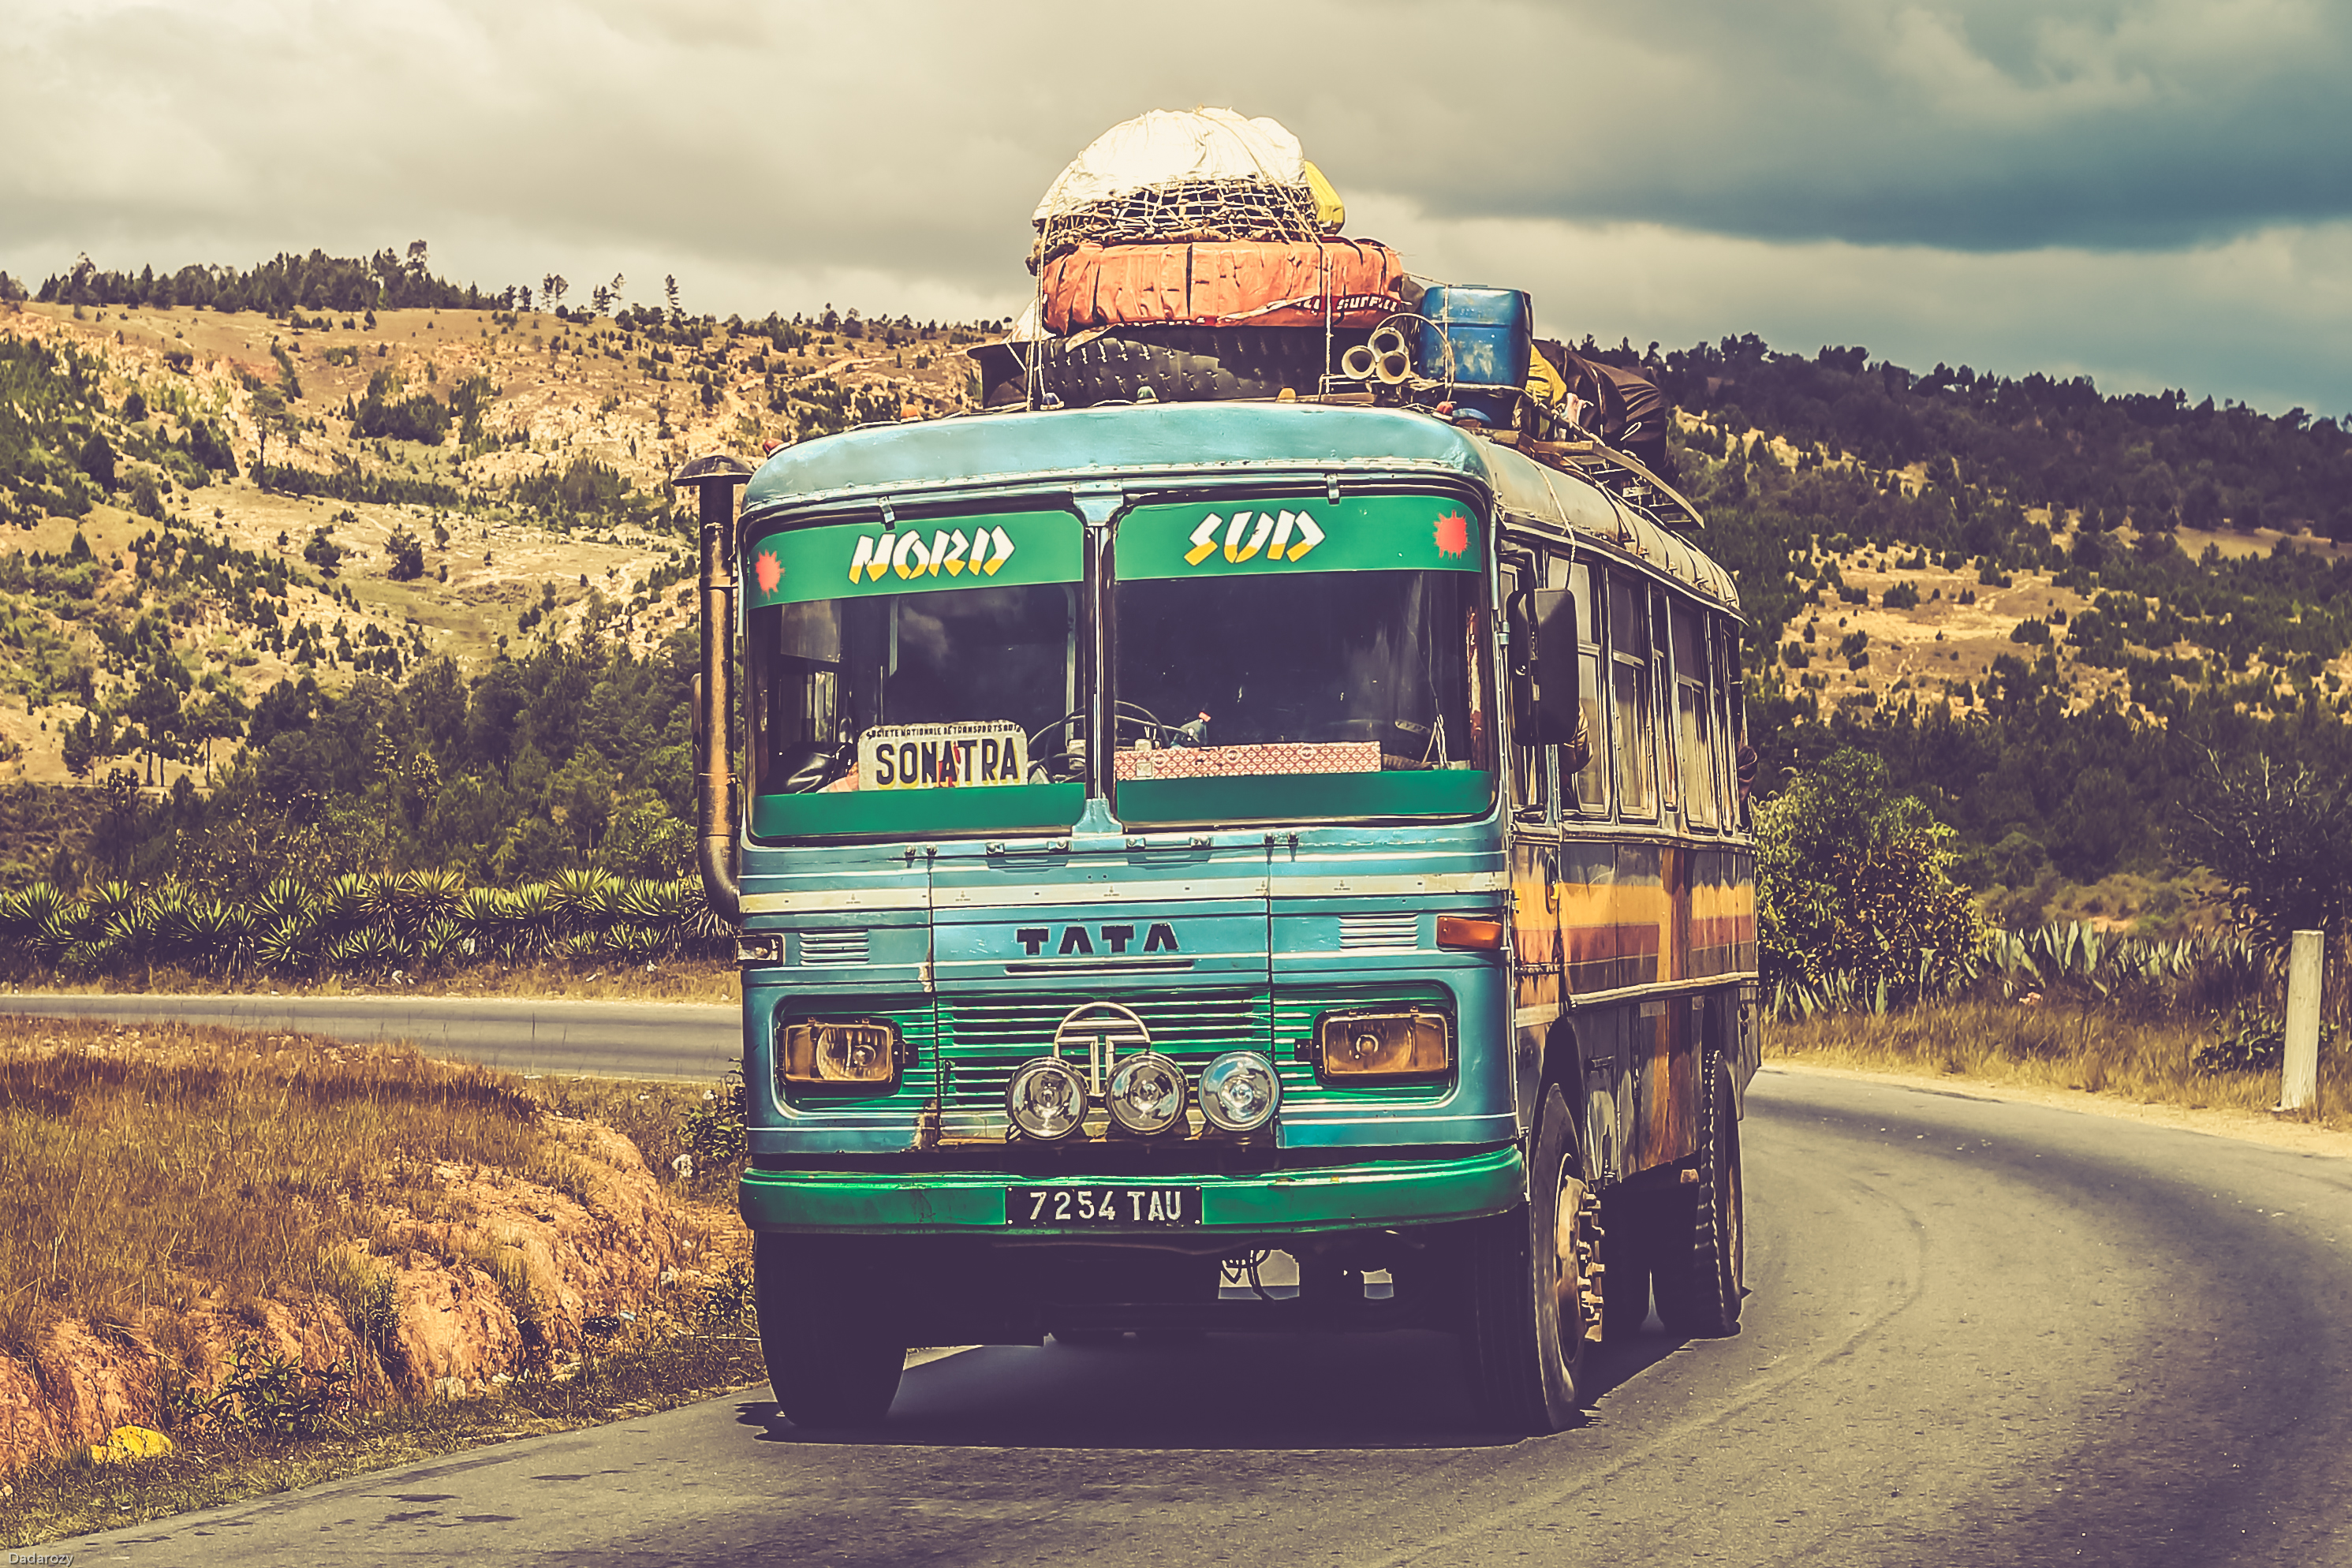 100 Beautiful Bus Photos Pexels Free Stock Photos